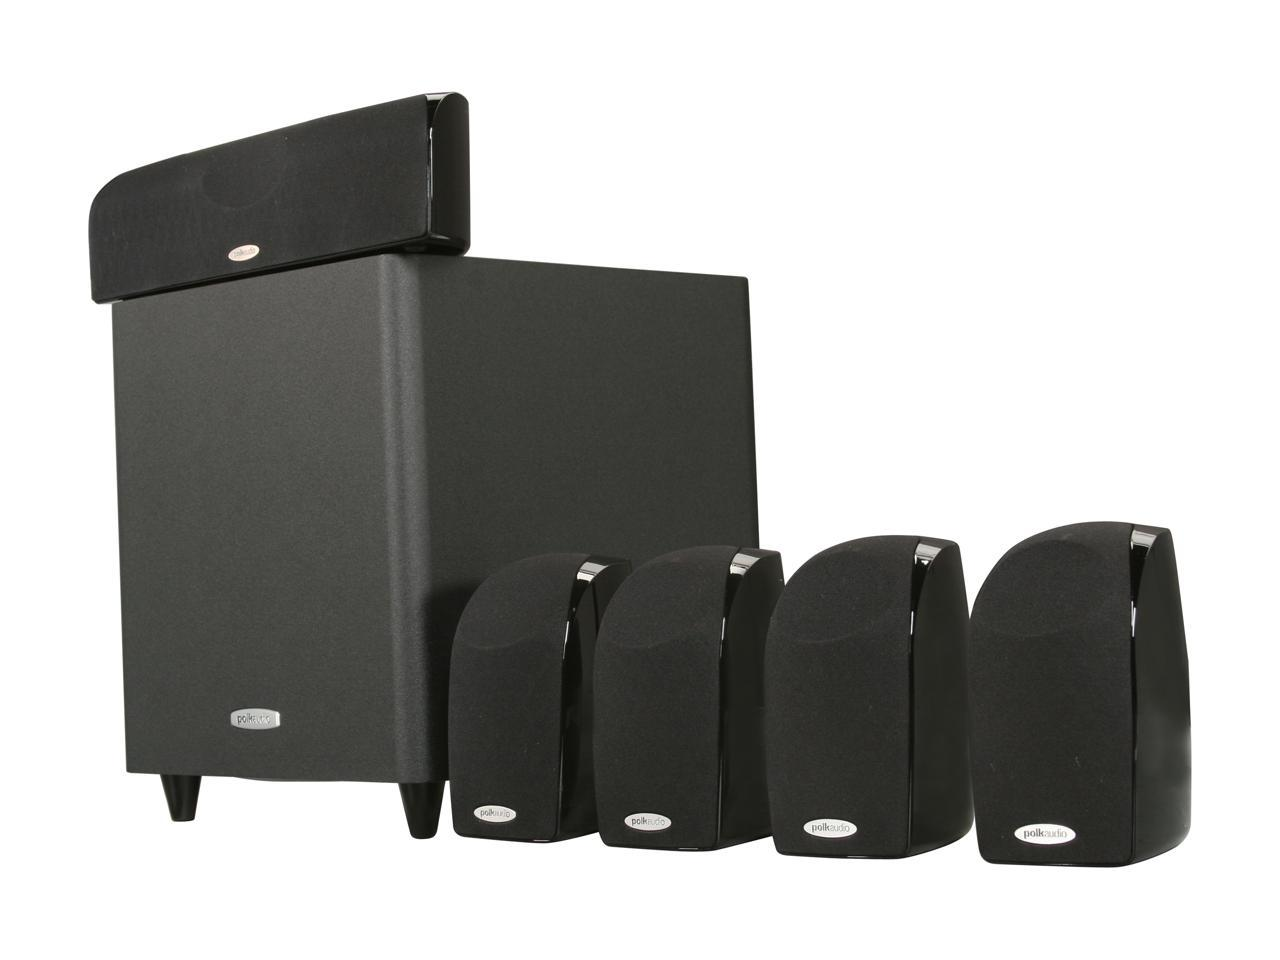 Polk Audio TL1600 5.1 Compact Surround Sound Home Theater System with Powered Subwoofer